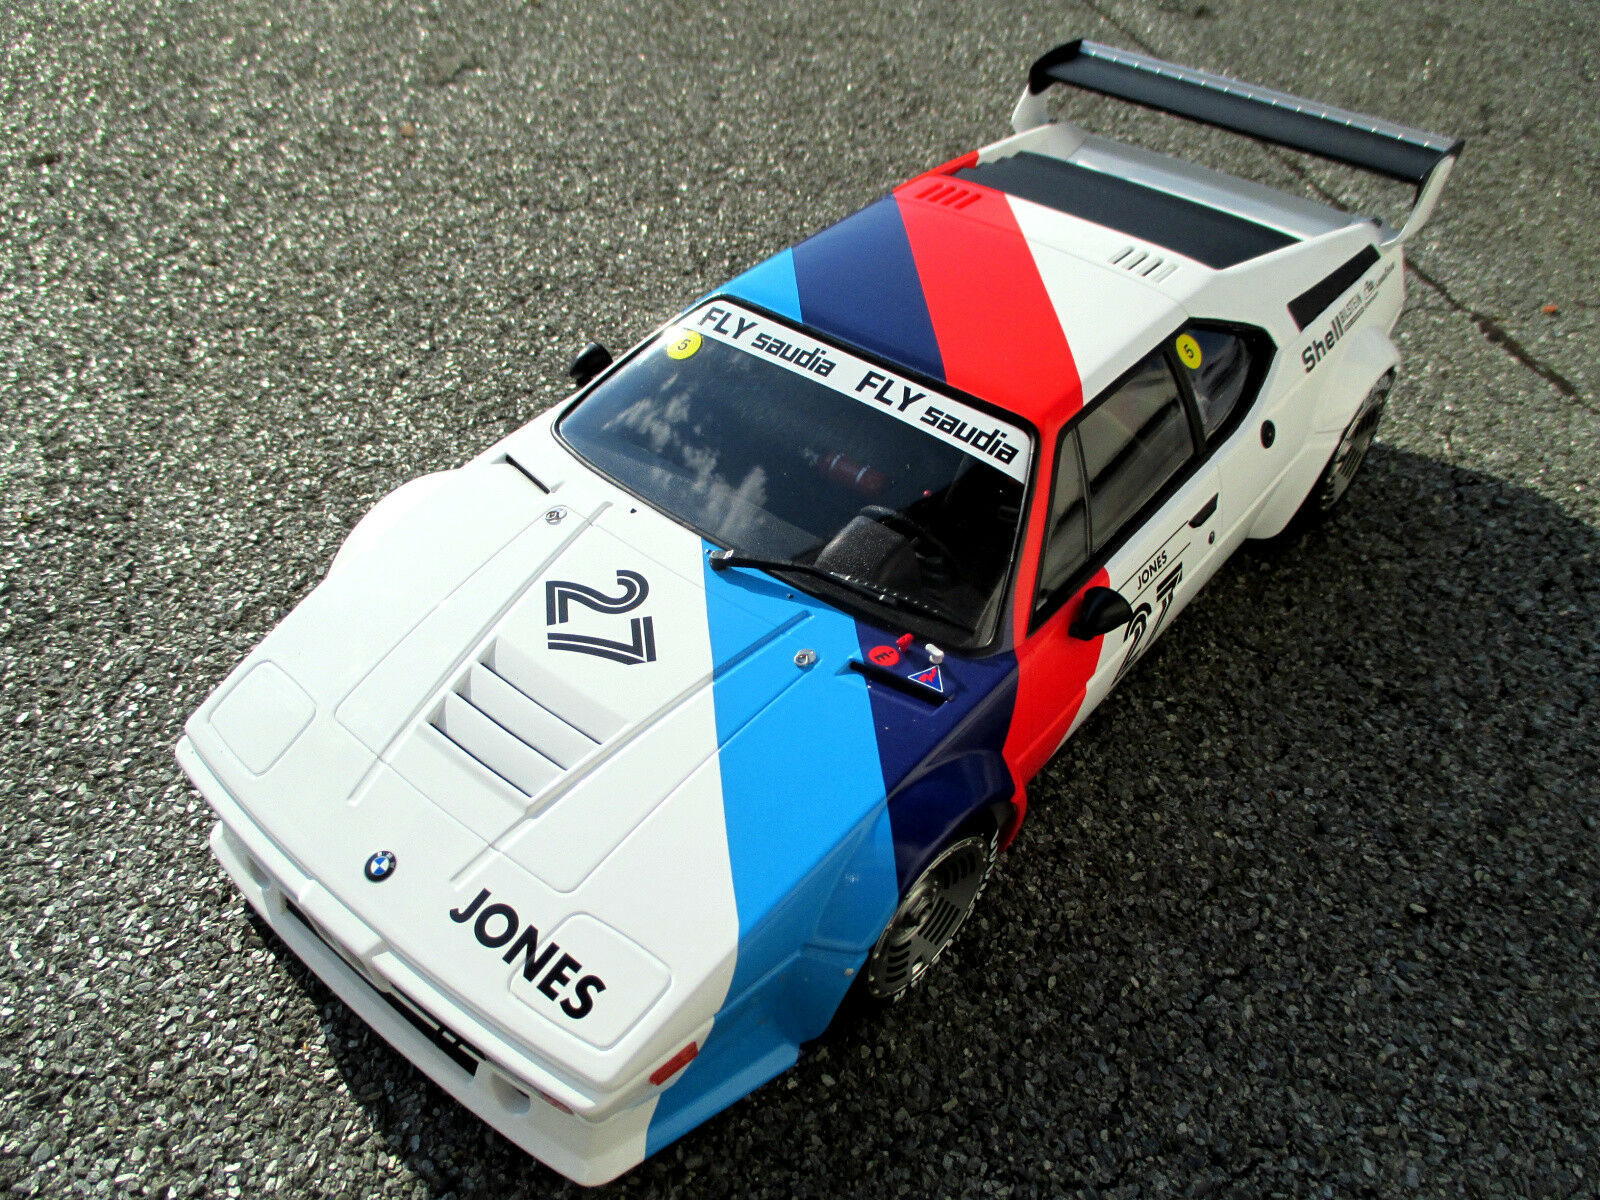 1 12 BMW m1  27 Alan Jones 1979 PROauto serie Minichamps 125 792927 Top + NUOVO